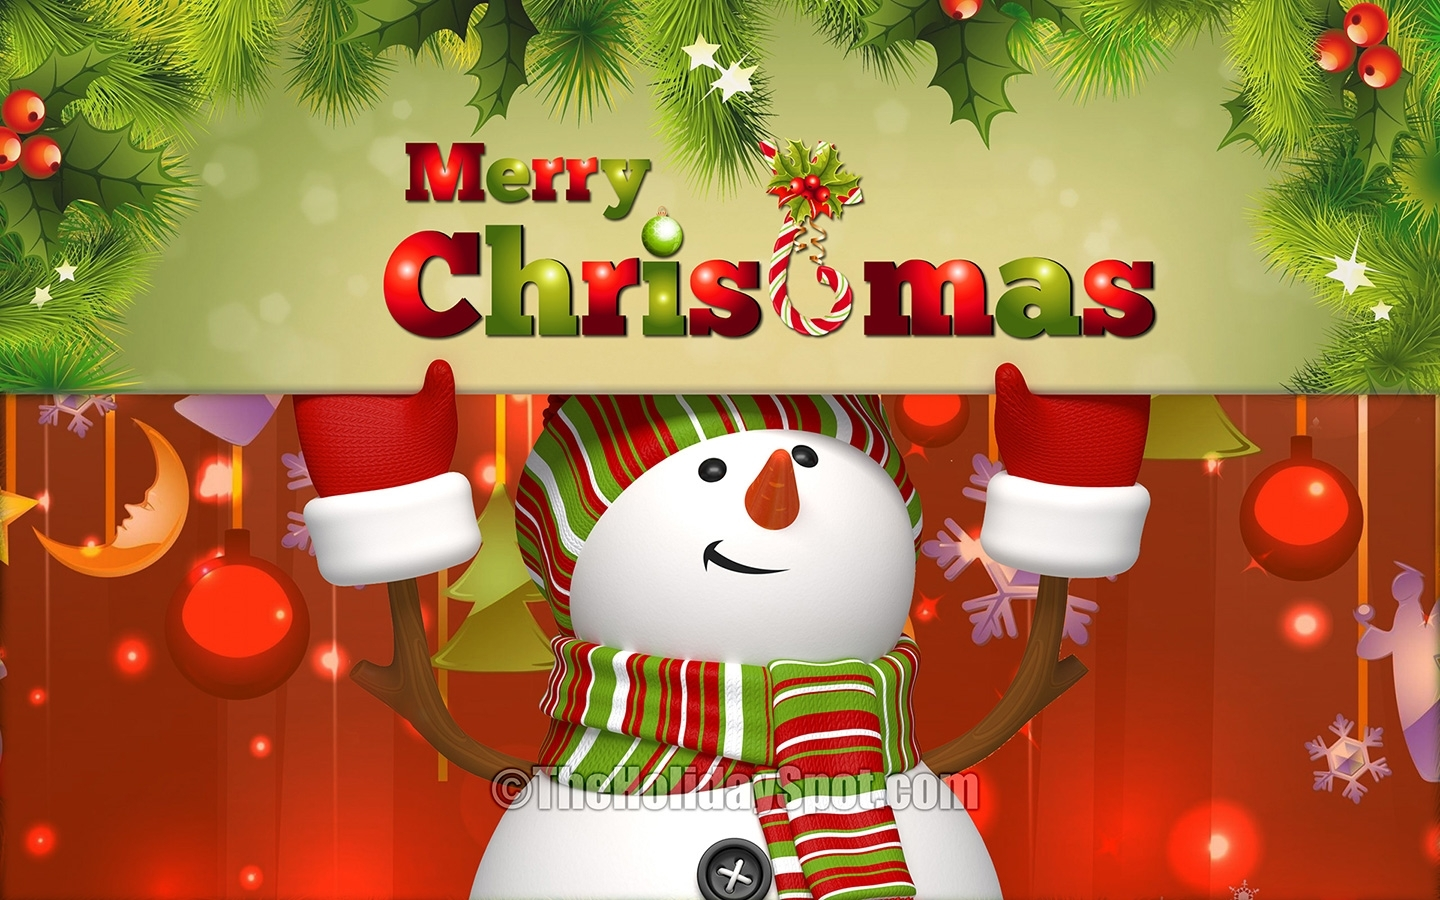 10 Best Merry Christmas Wall Paper FULL HD 1080p For PC Desktop